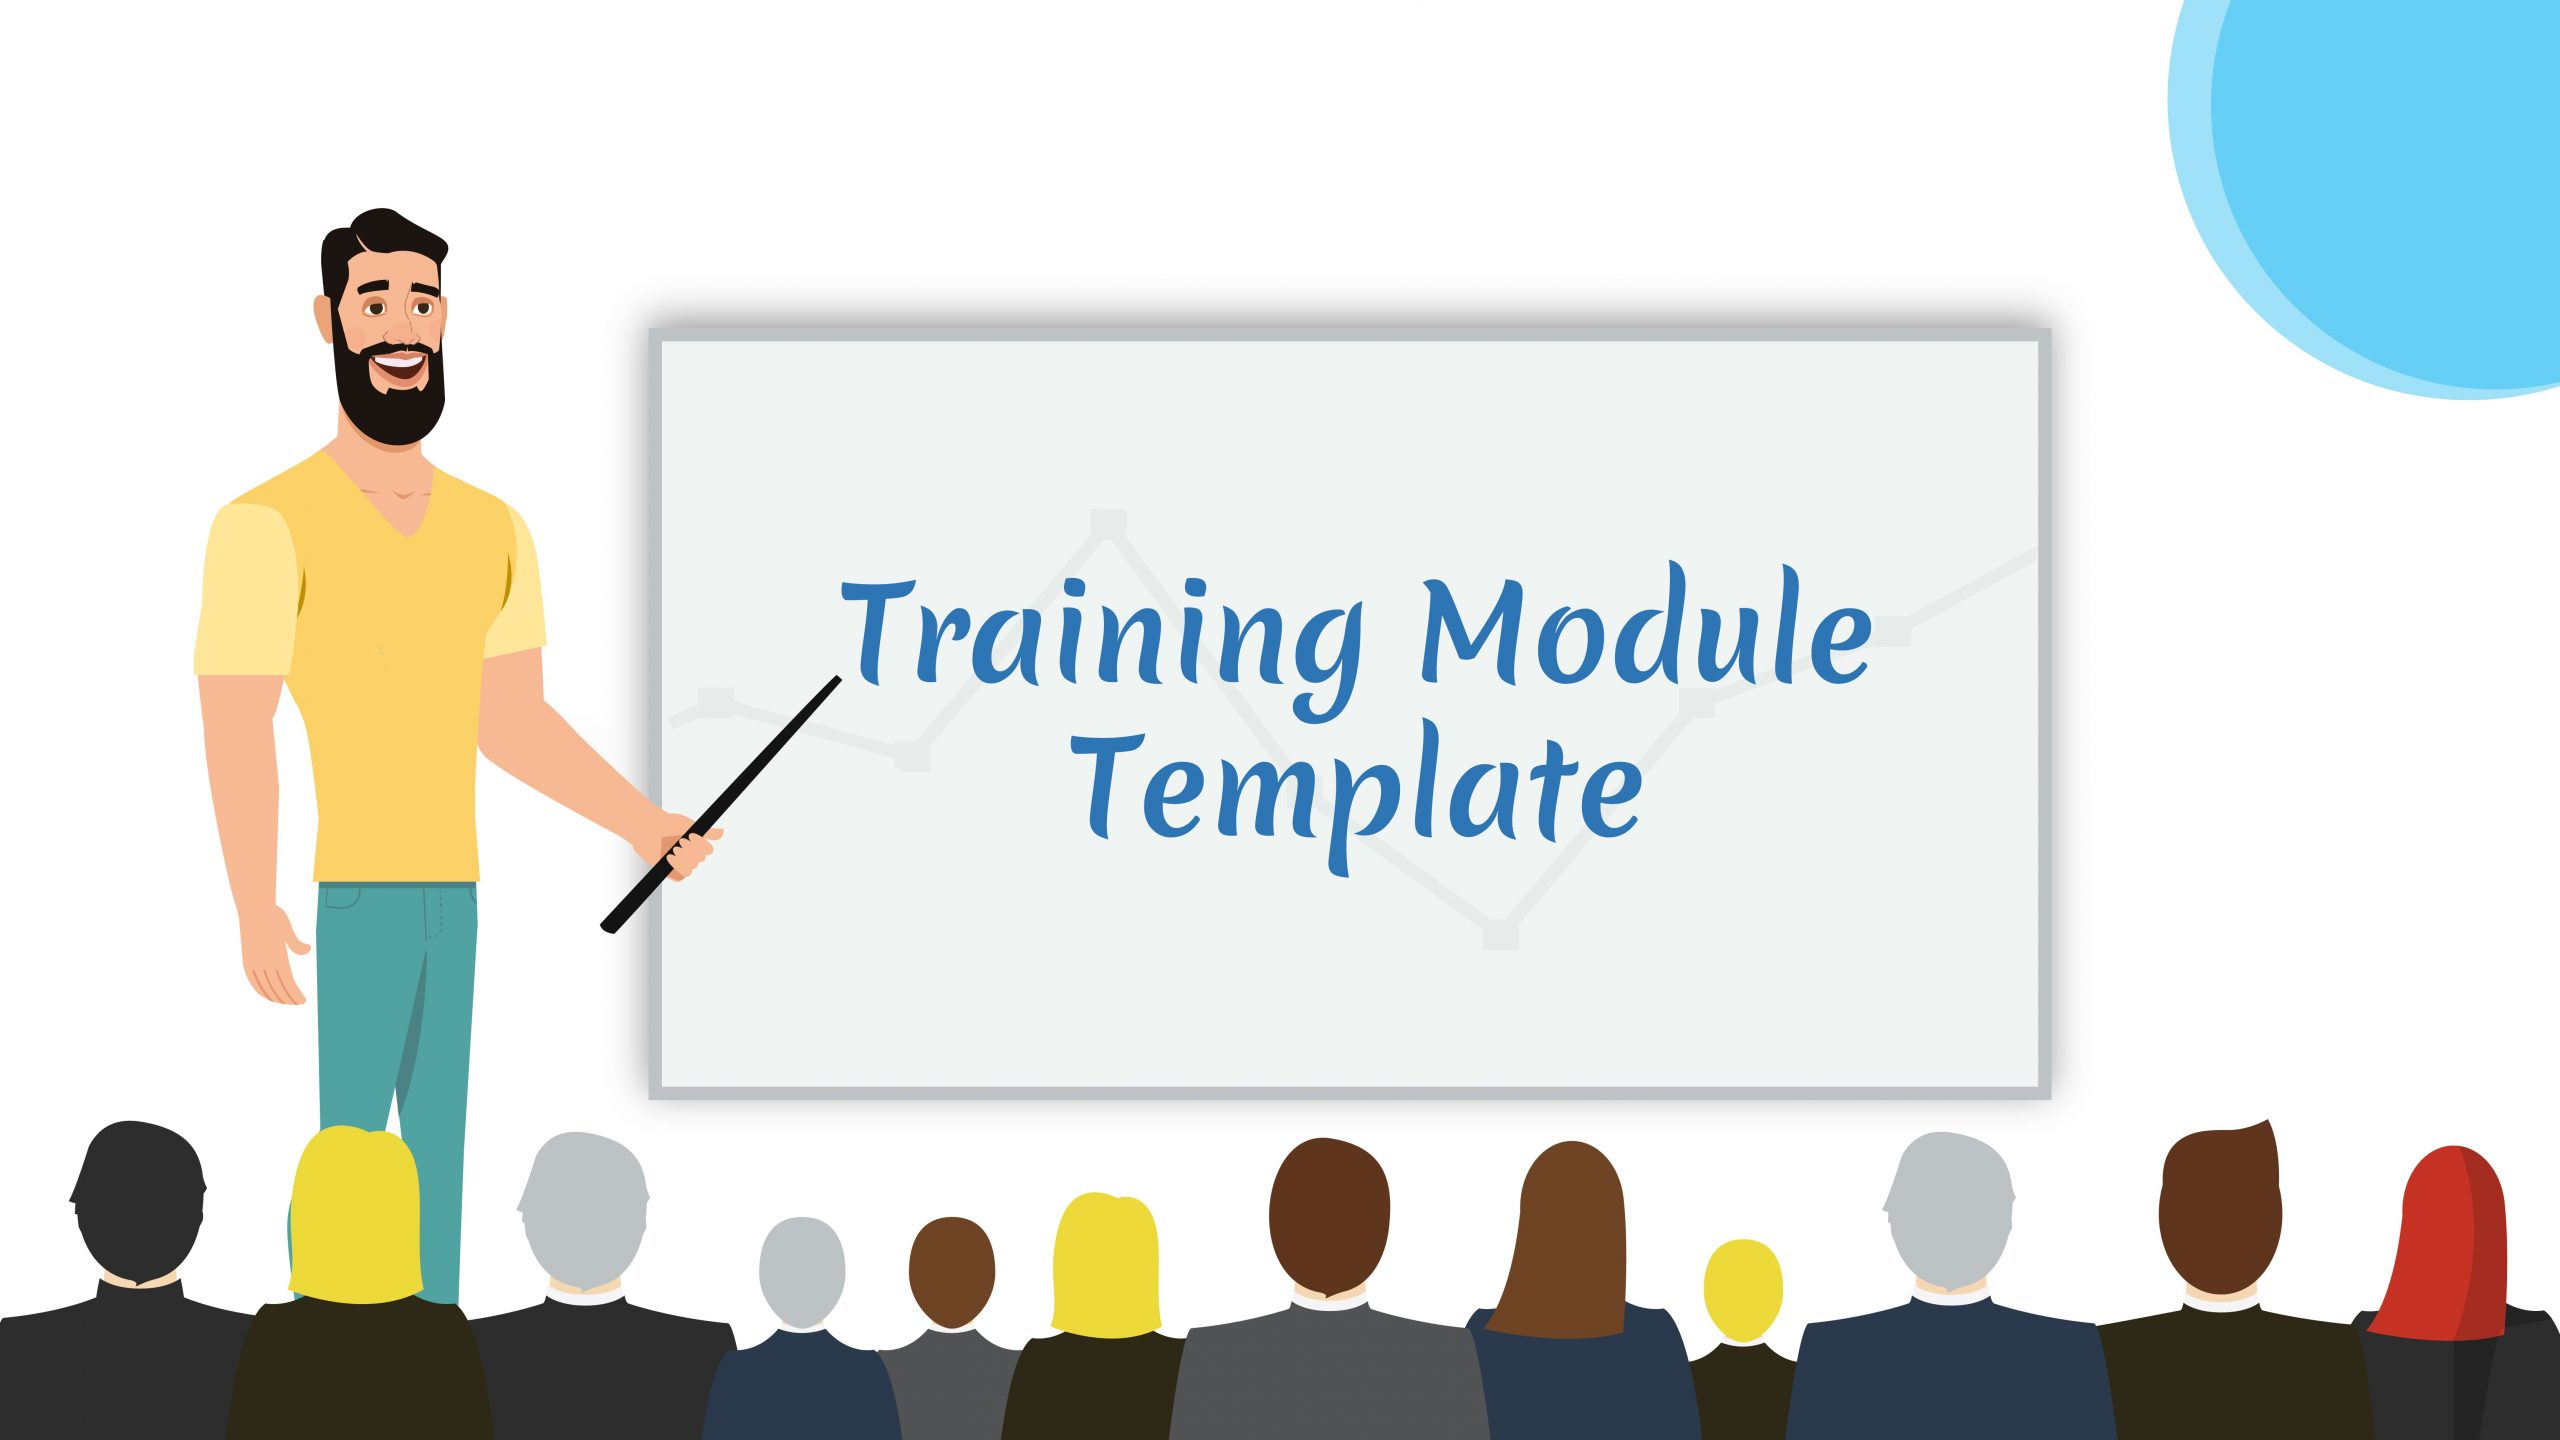 Training-Module-by-Discover-Template-1